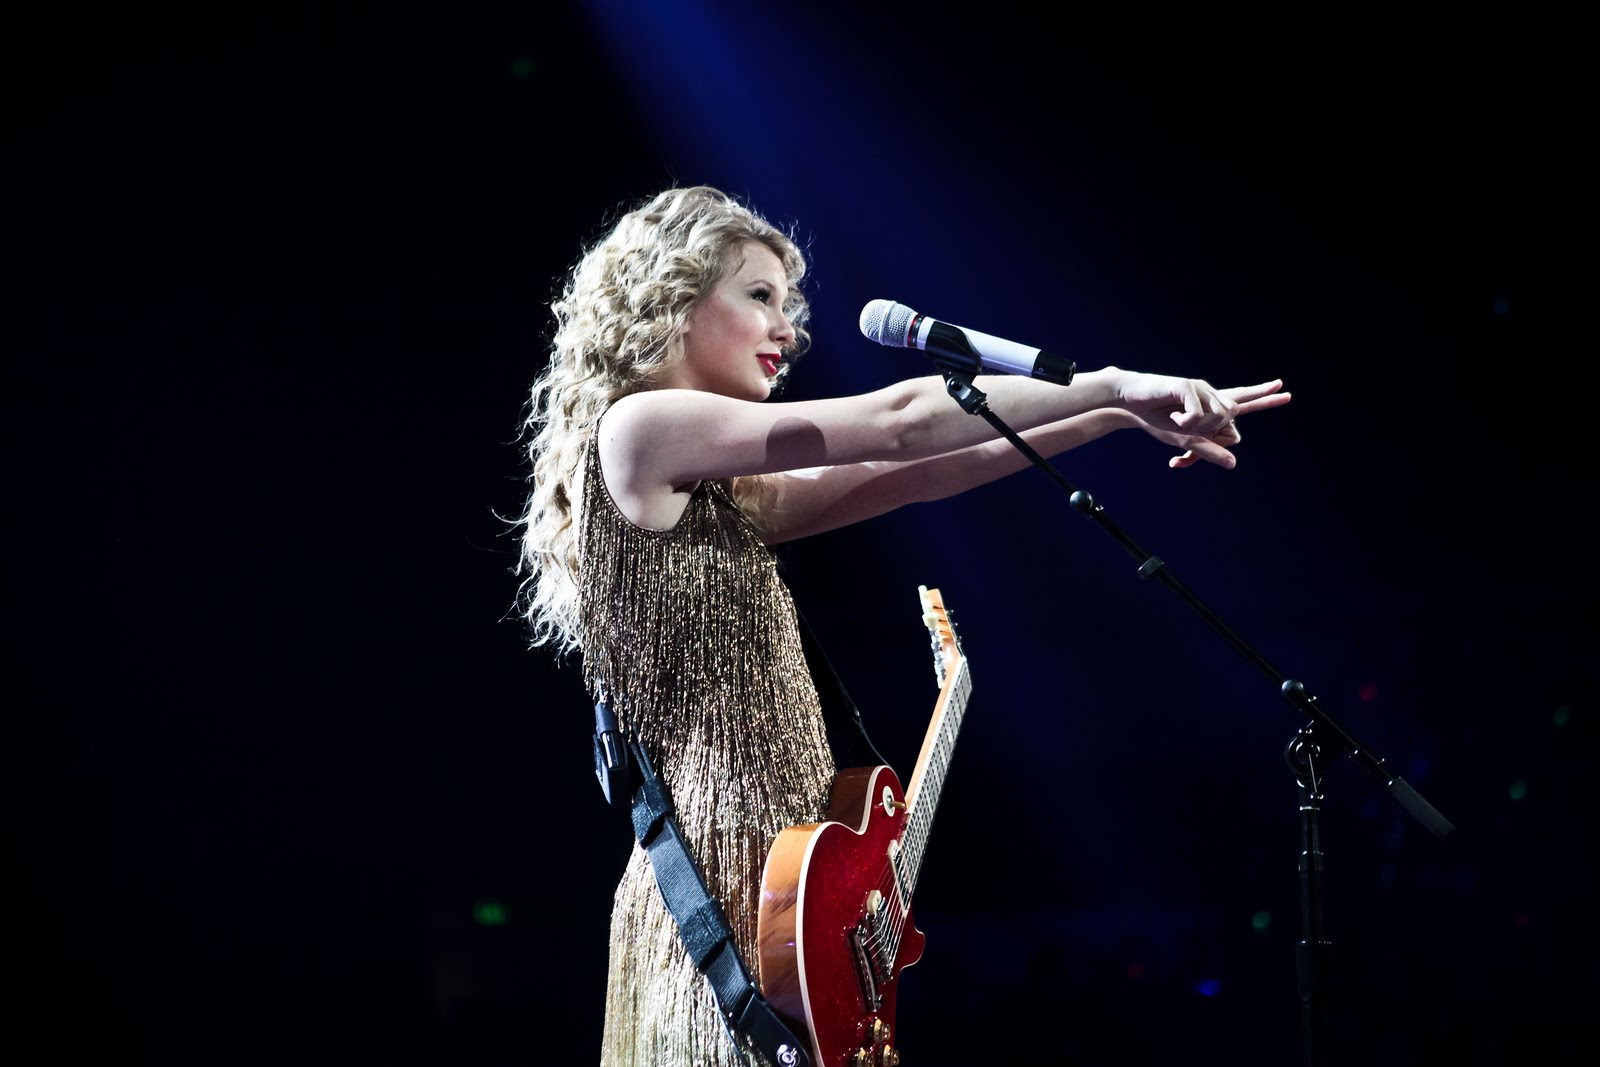 http://1.bp.blogspot.com/-EOk5LF0IYdQ/TdqWJDM5s5I/AAAAAAAAD1g/sLOfNytO3DI/s1600/Taylor+Swift+Speak+Now+Help+Now+-+CountryMusicRocks.net.jpg